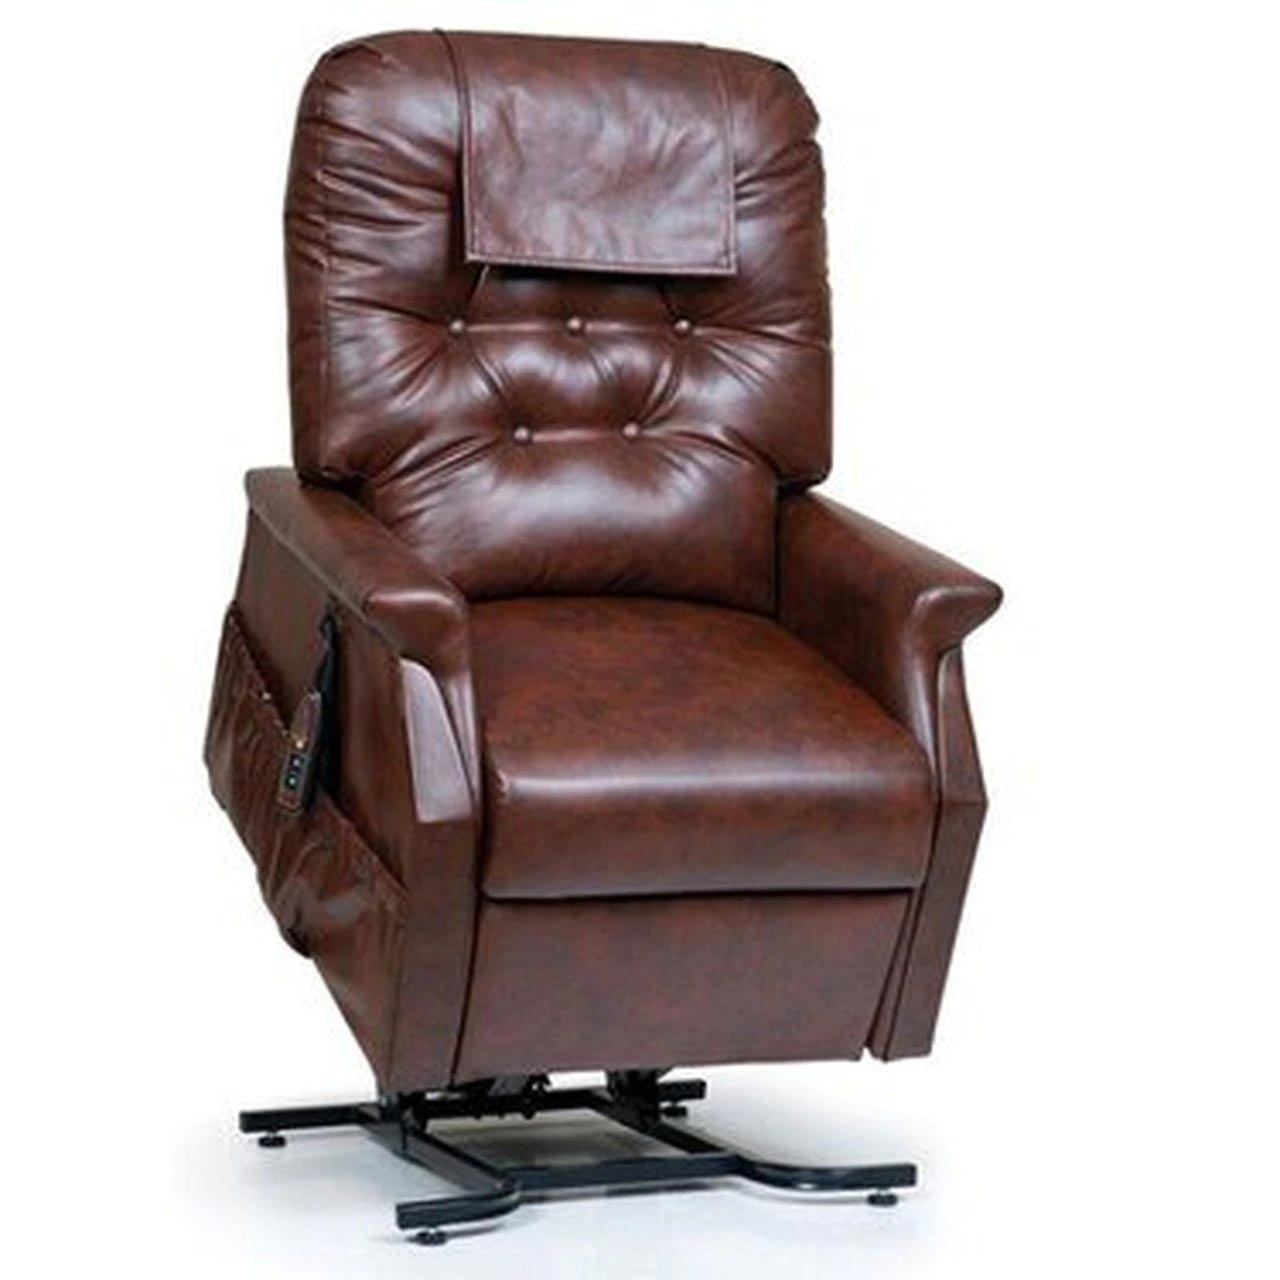 Golden Technologies Capri PR200 Lift Recliner | Medicaleshop